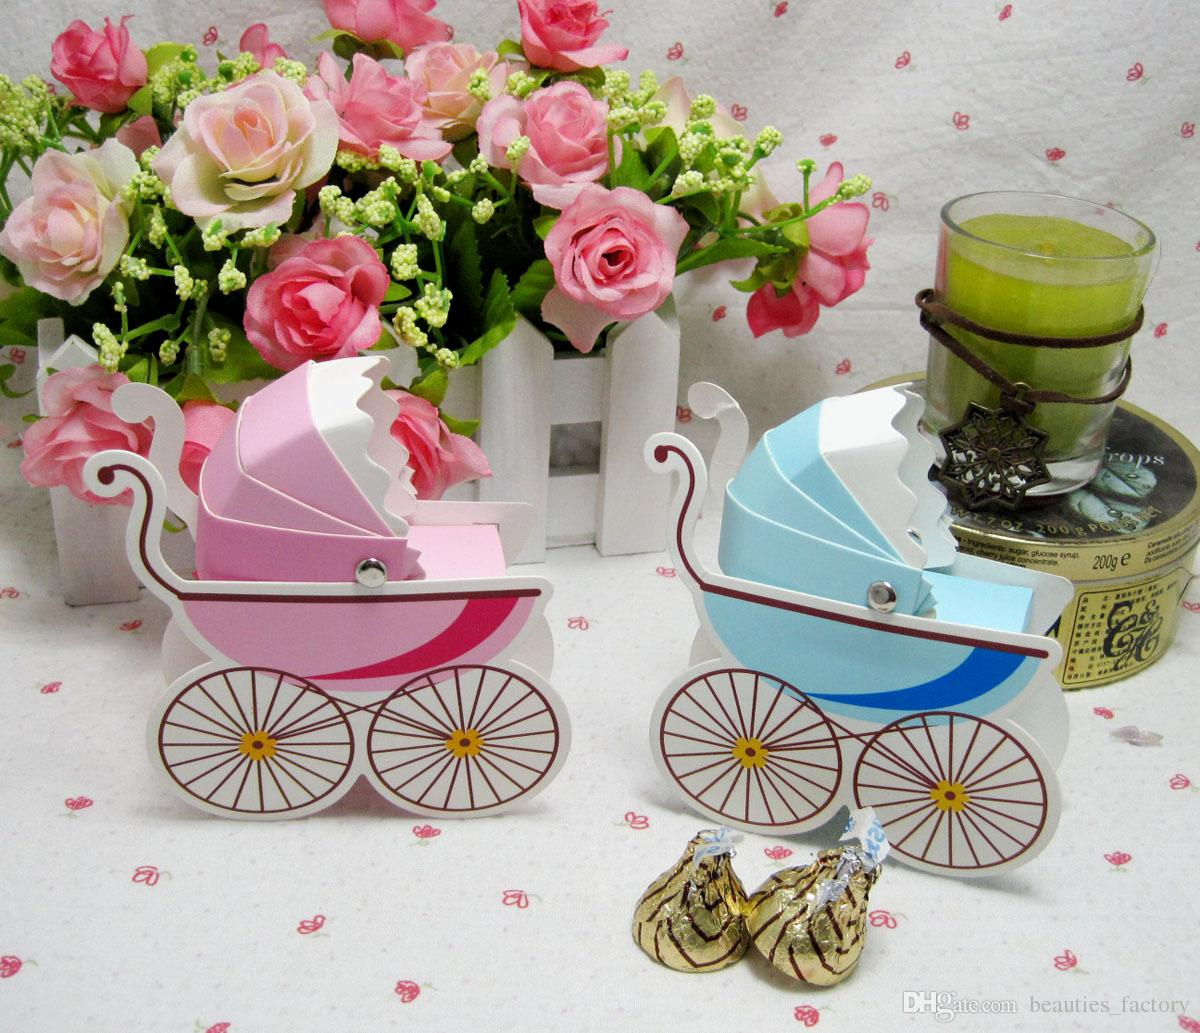 50pcs Pink Baby's Stroller Candy Box Cute Pram Boxes Baby Shower Wedding Favors Gift boxes 3 colors